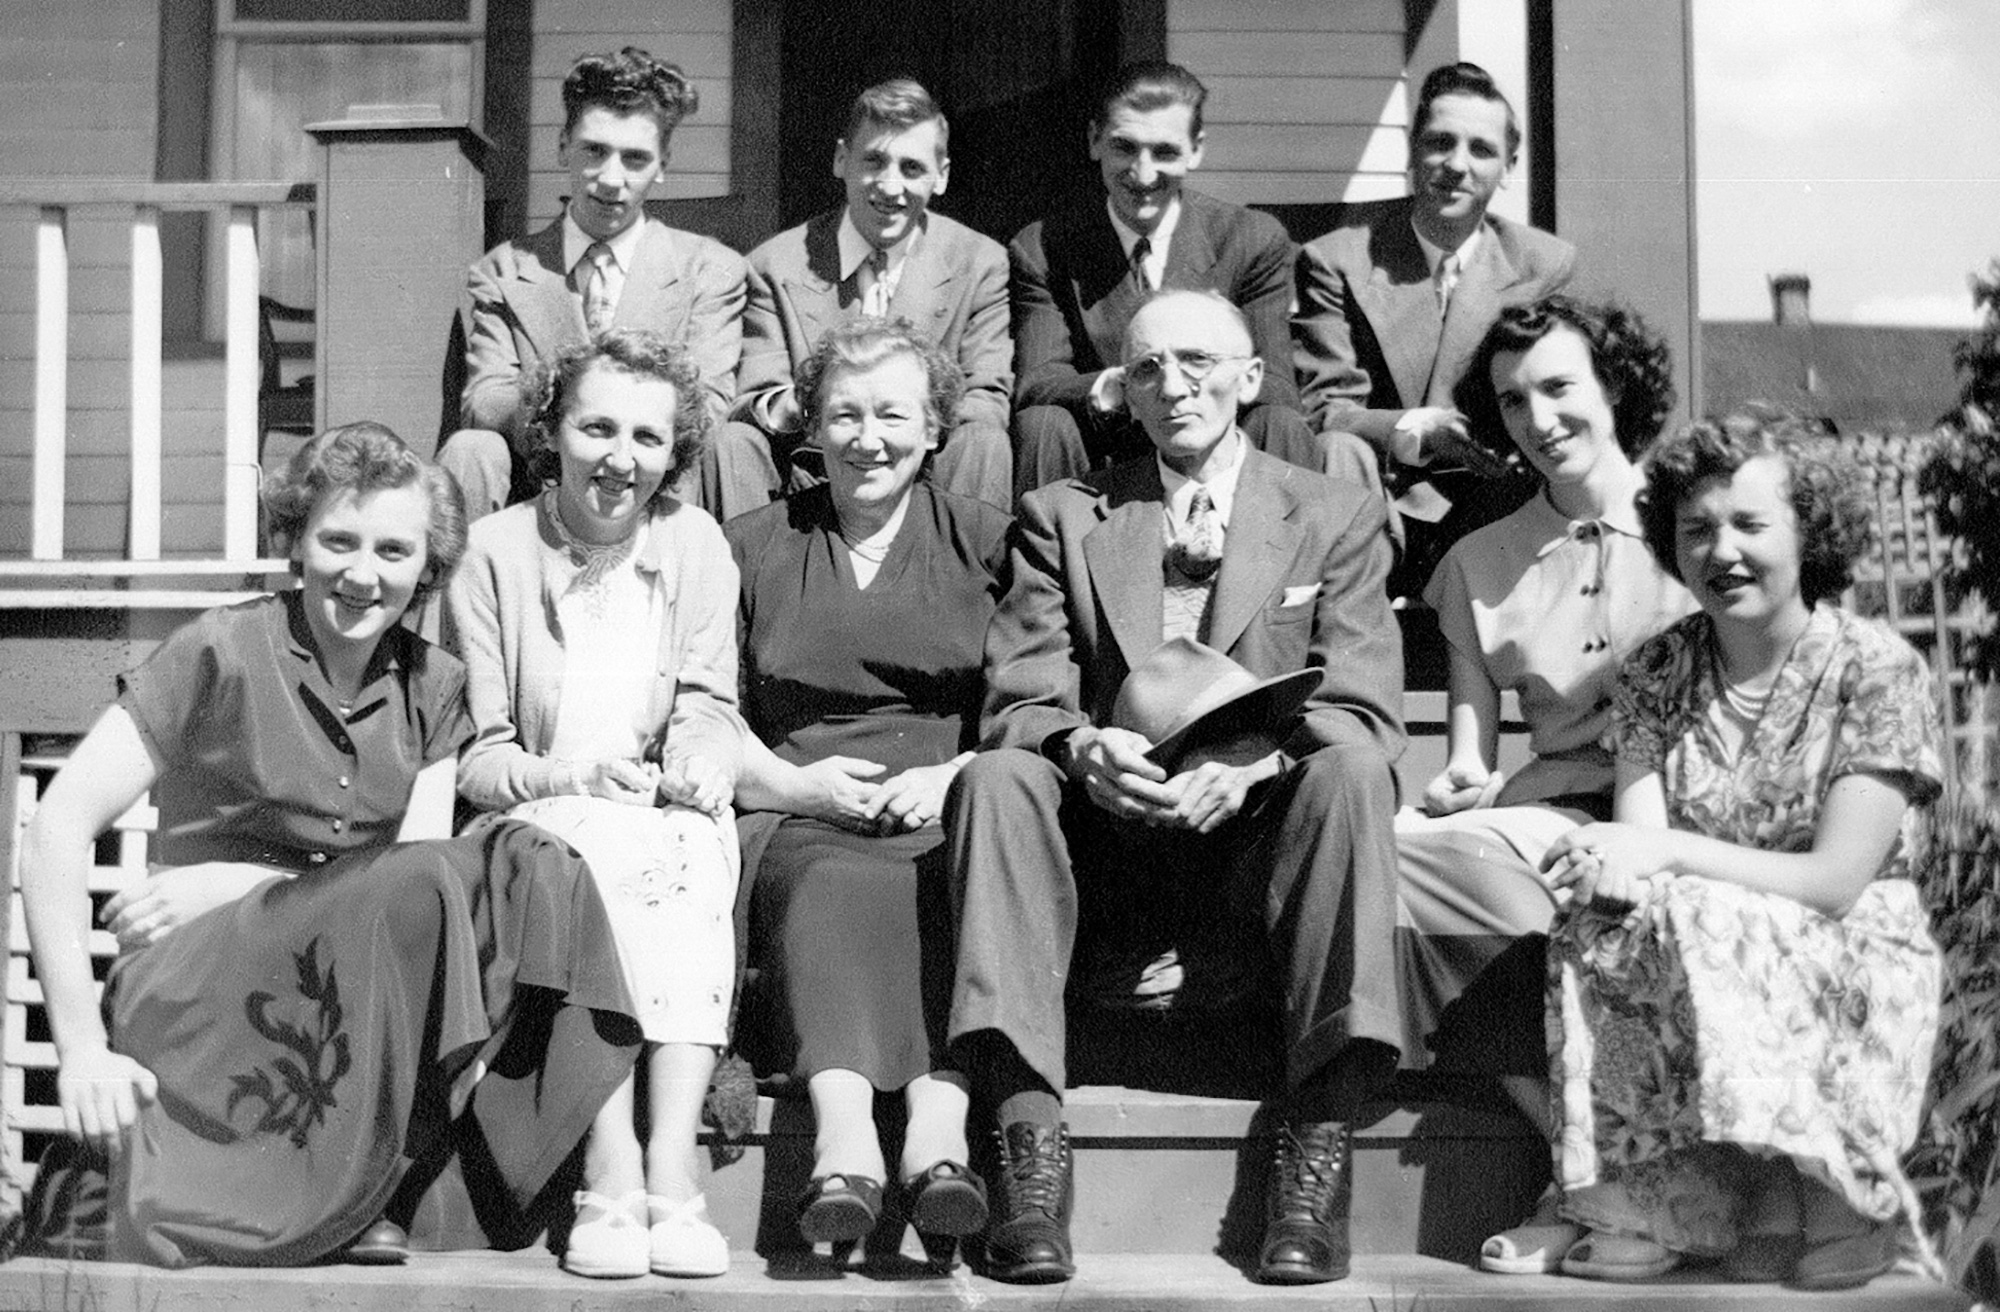 The Askew Family in 1951. Back L to R: Don, Gordon, David and Lloyd. Front L to R: Winnifred, Margery, parents Mary and R.B. (Dick), Marion and Doreen